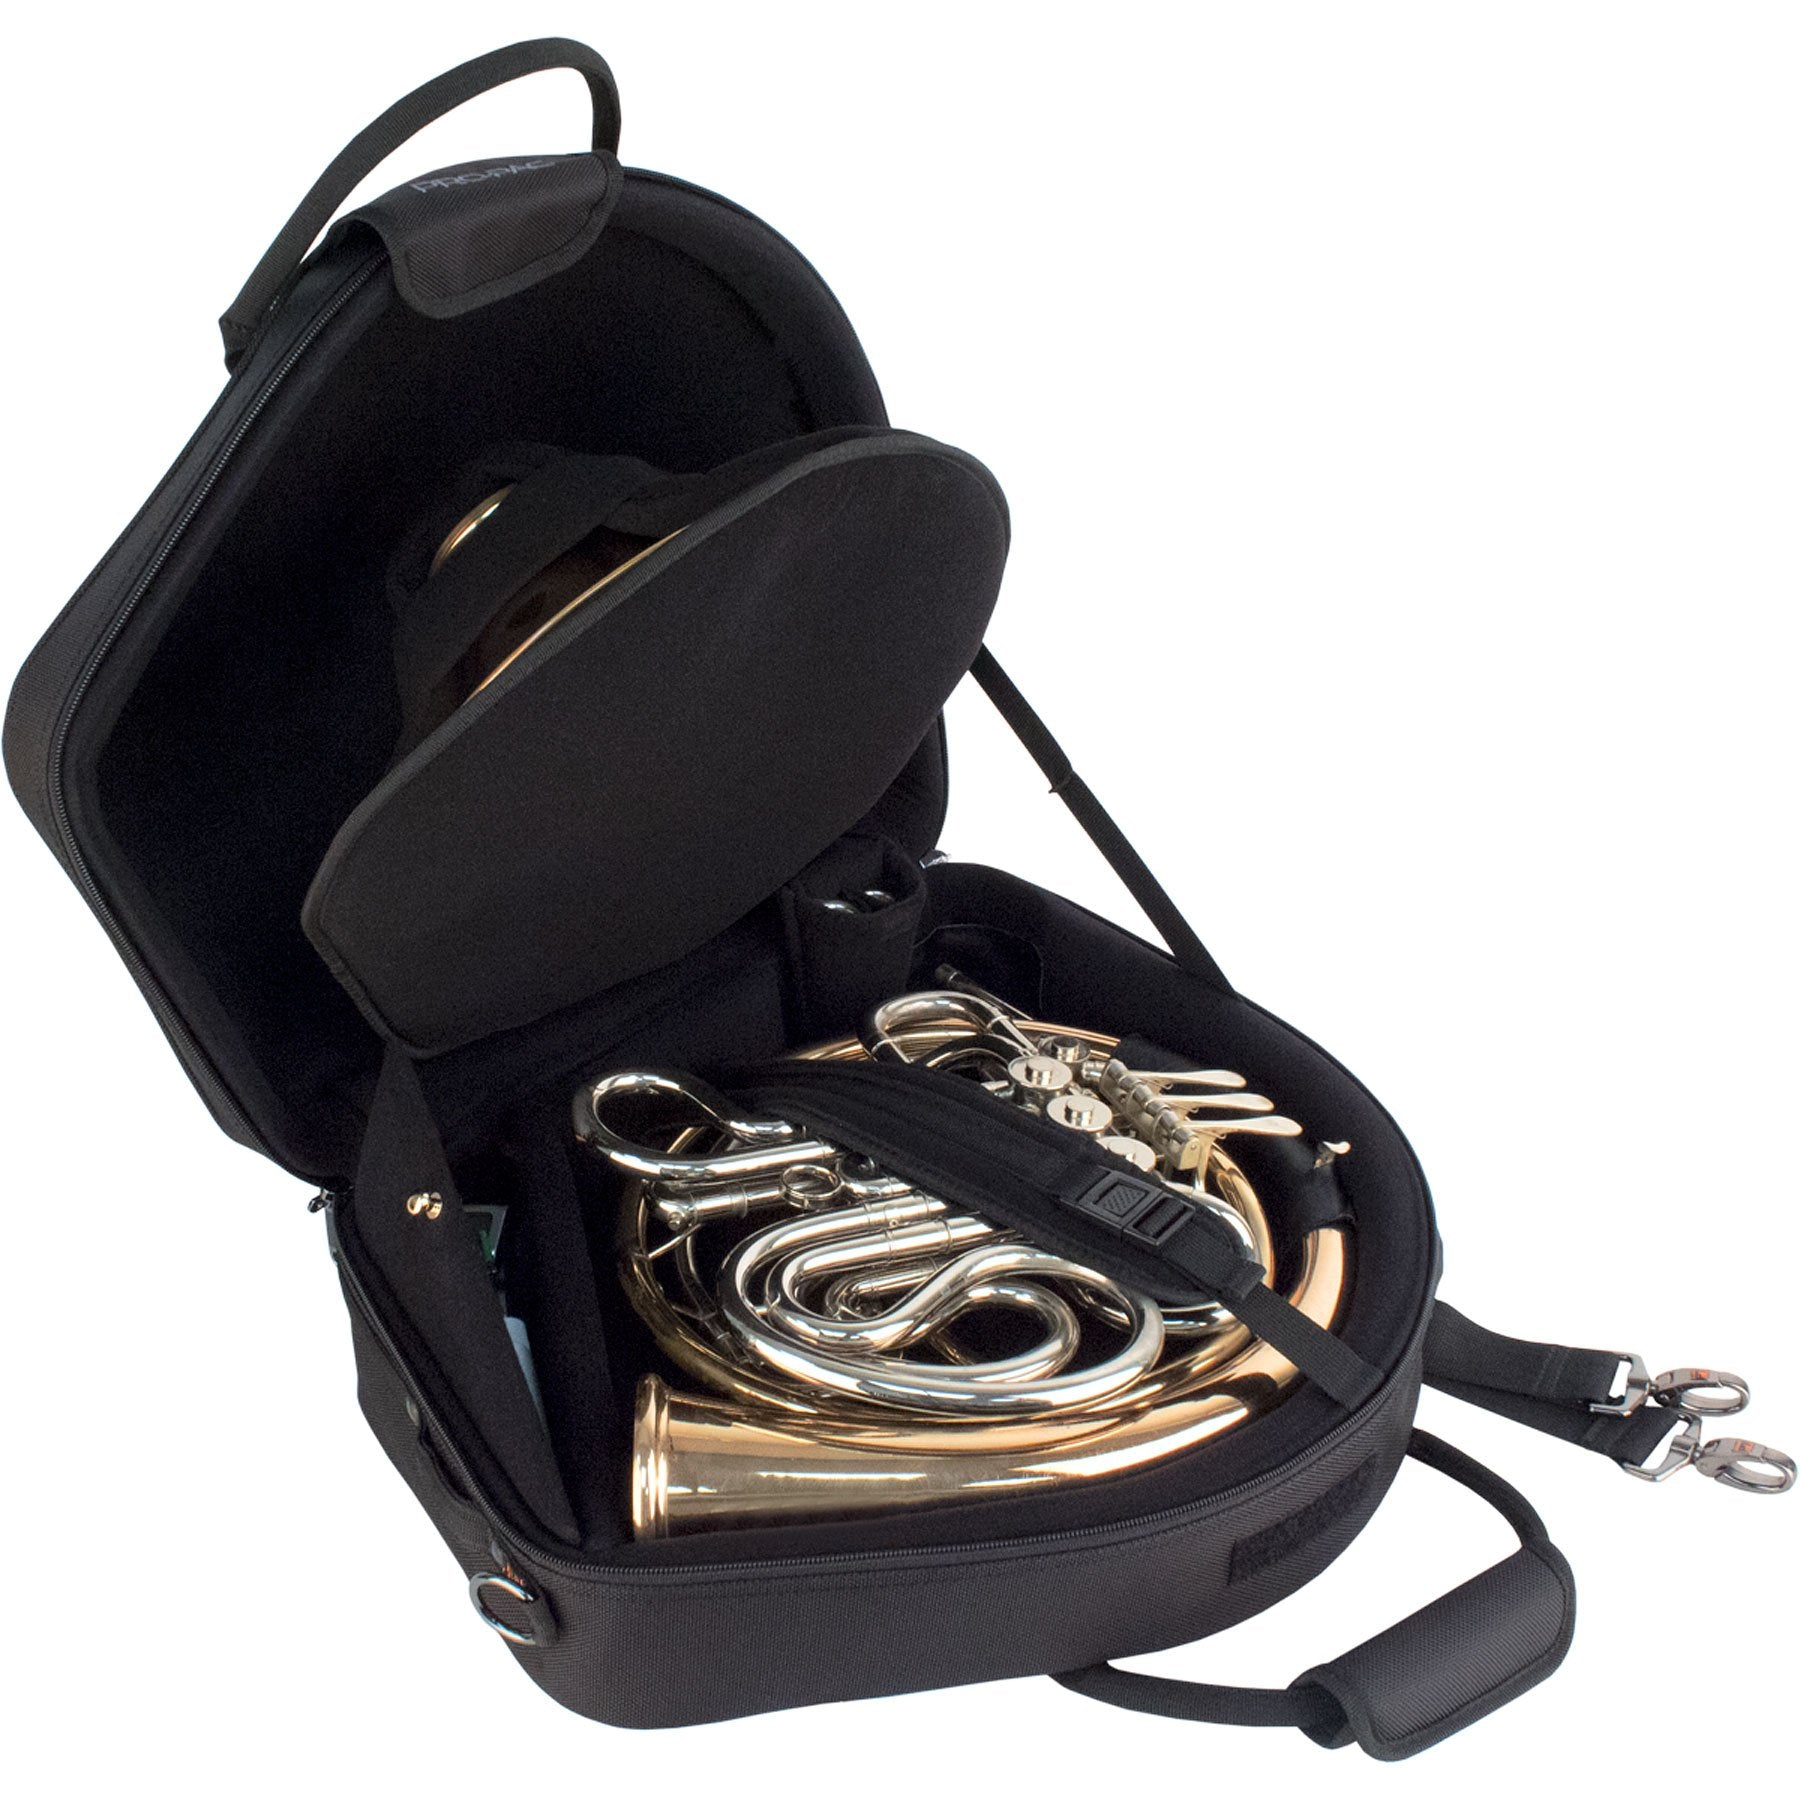 Protec - French Horn Screw Bell IPAC Case (Compact)-Case-Protec-Music Elements